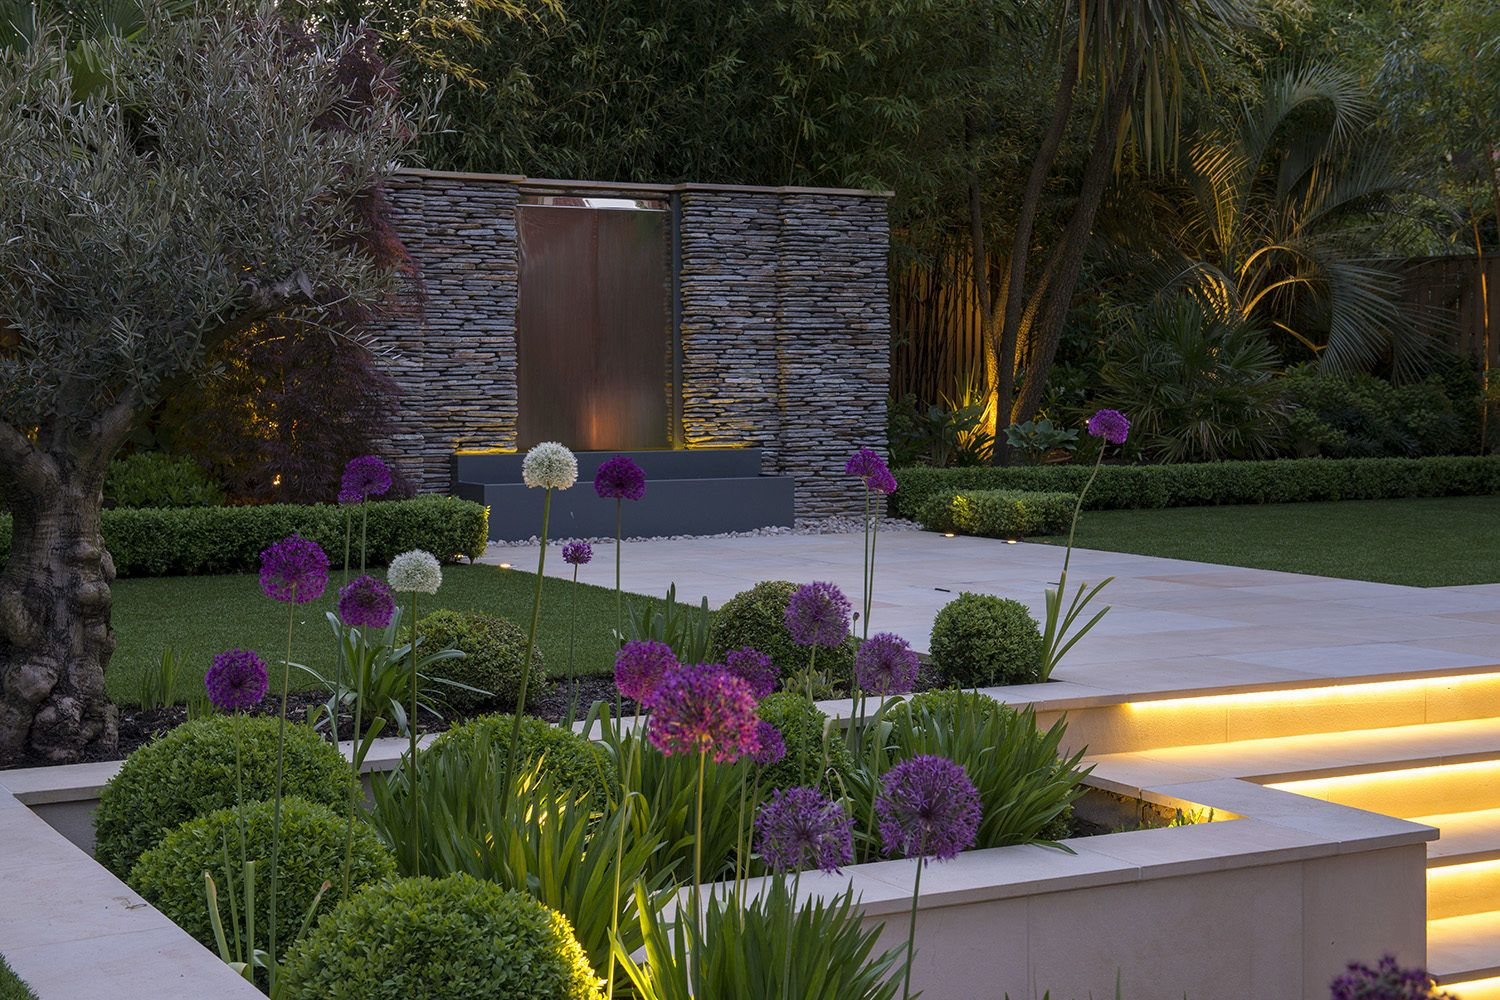 Kate Gould Gardens - Contemporary Garden Design Twickenham #contemporarygardendesign